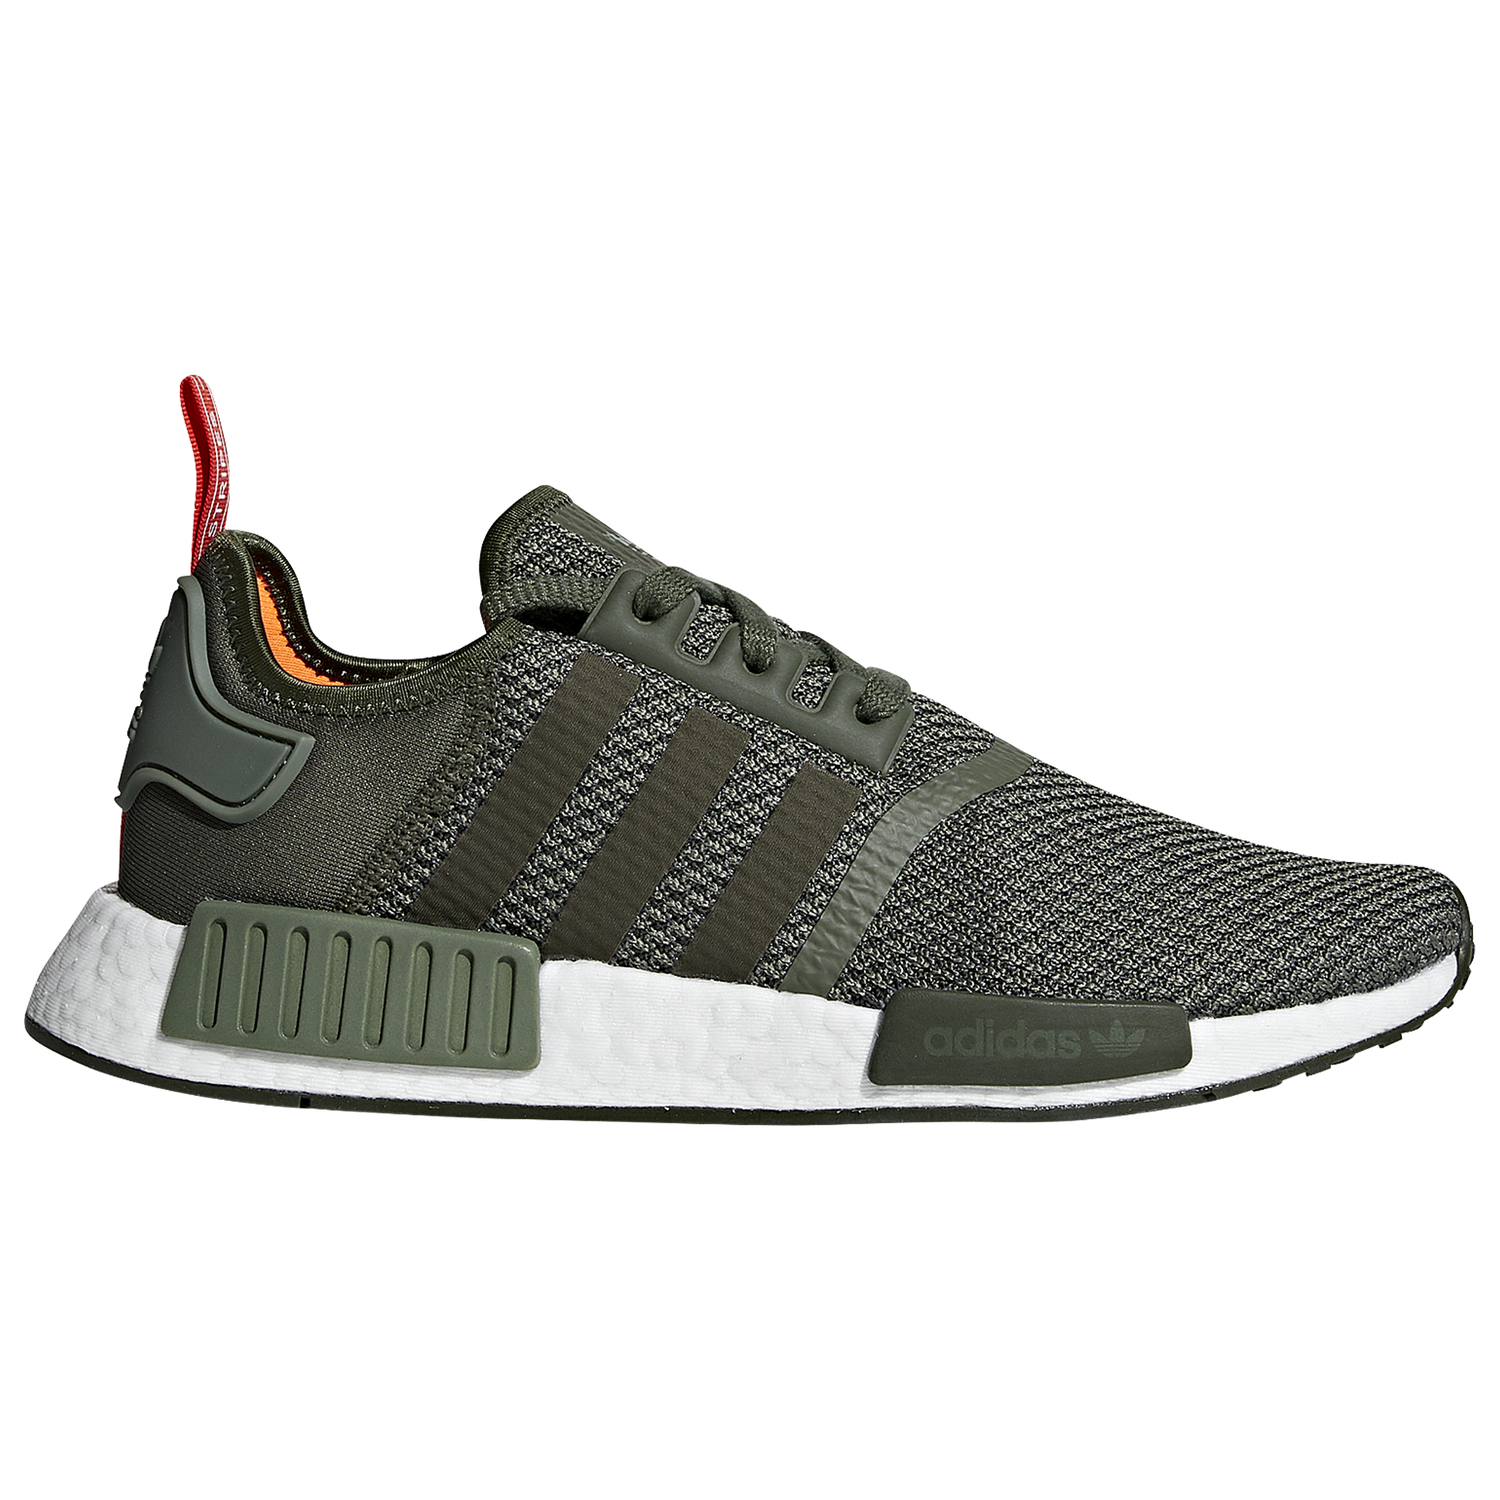 4fd32fb2800675 purchase green grey mens adidas nmd runner shoes 2ff2f 3274a